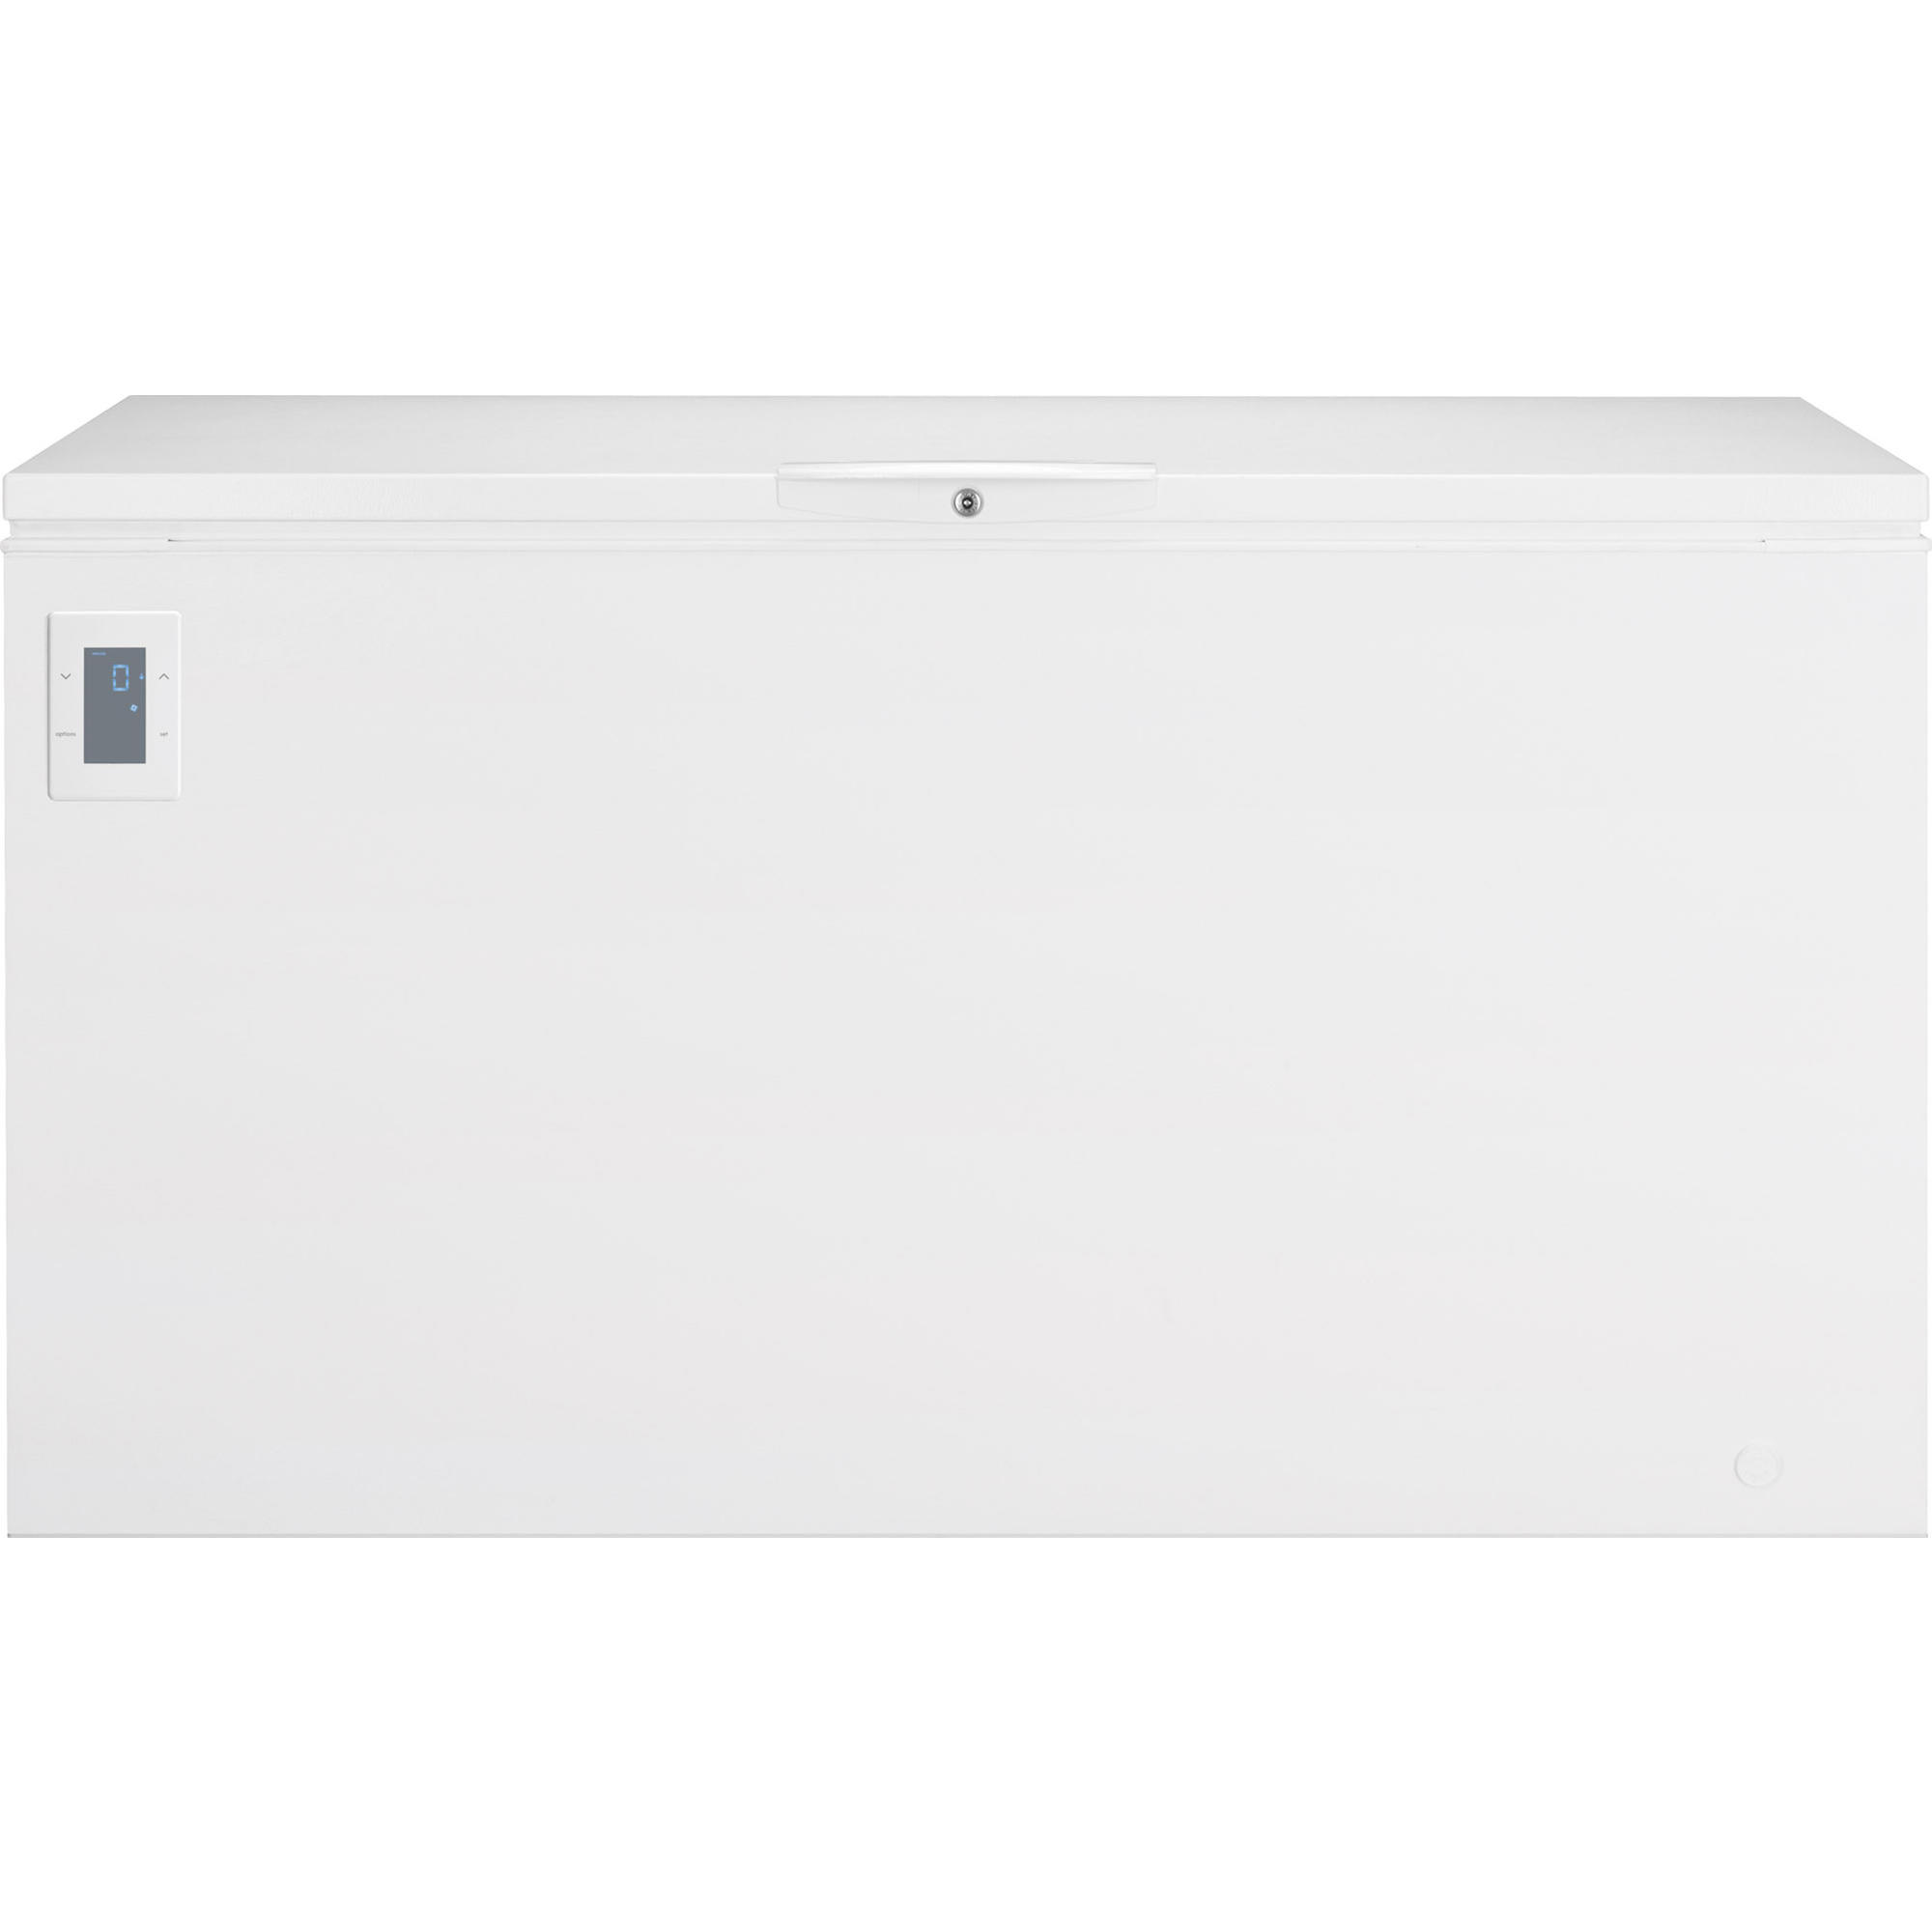 Kenmore Elite 17802 17.5 cu. ft. Chest Freezer - White